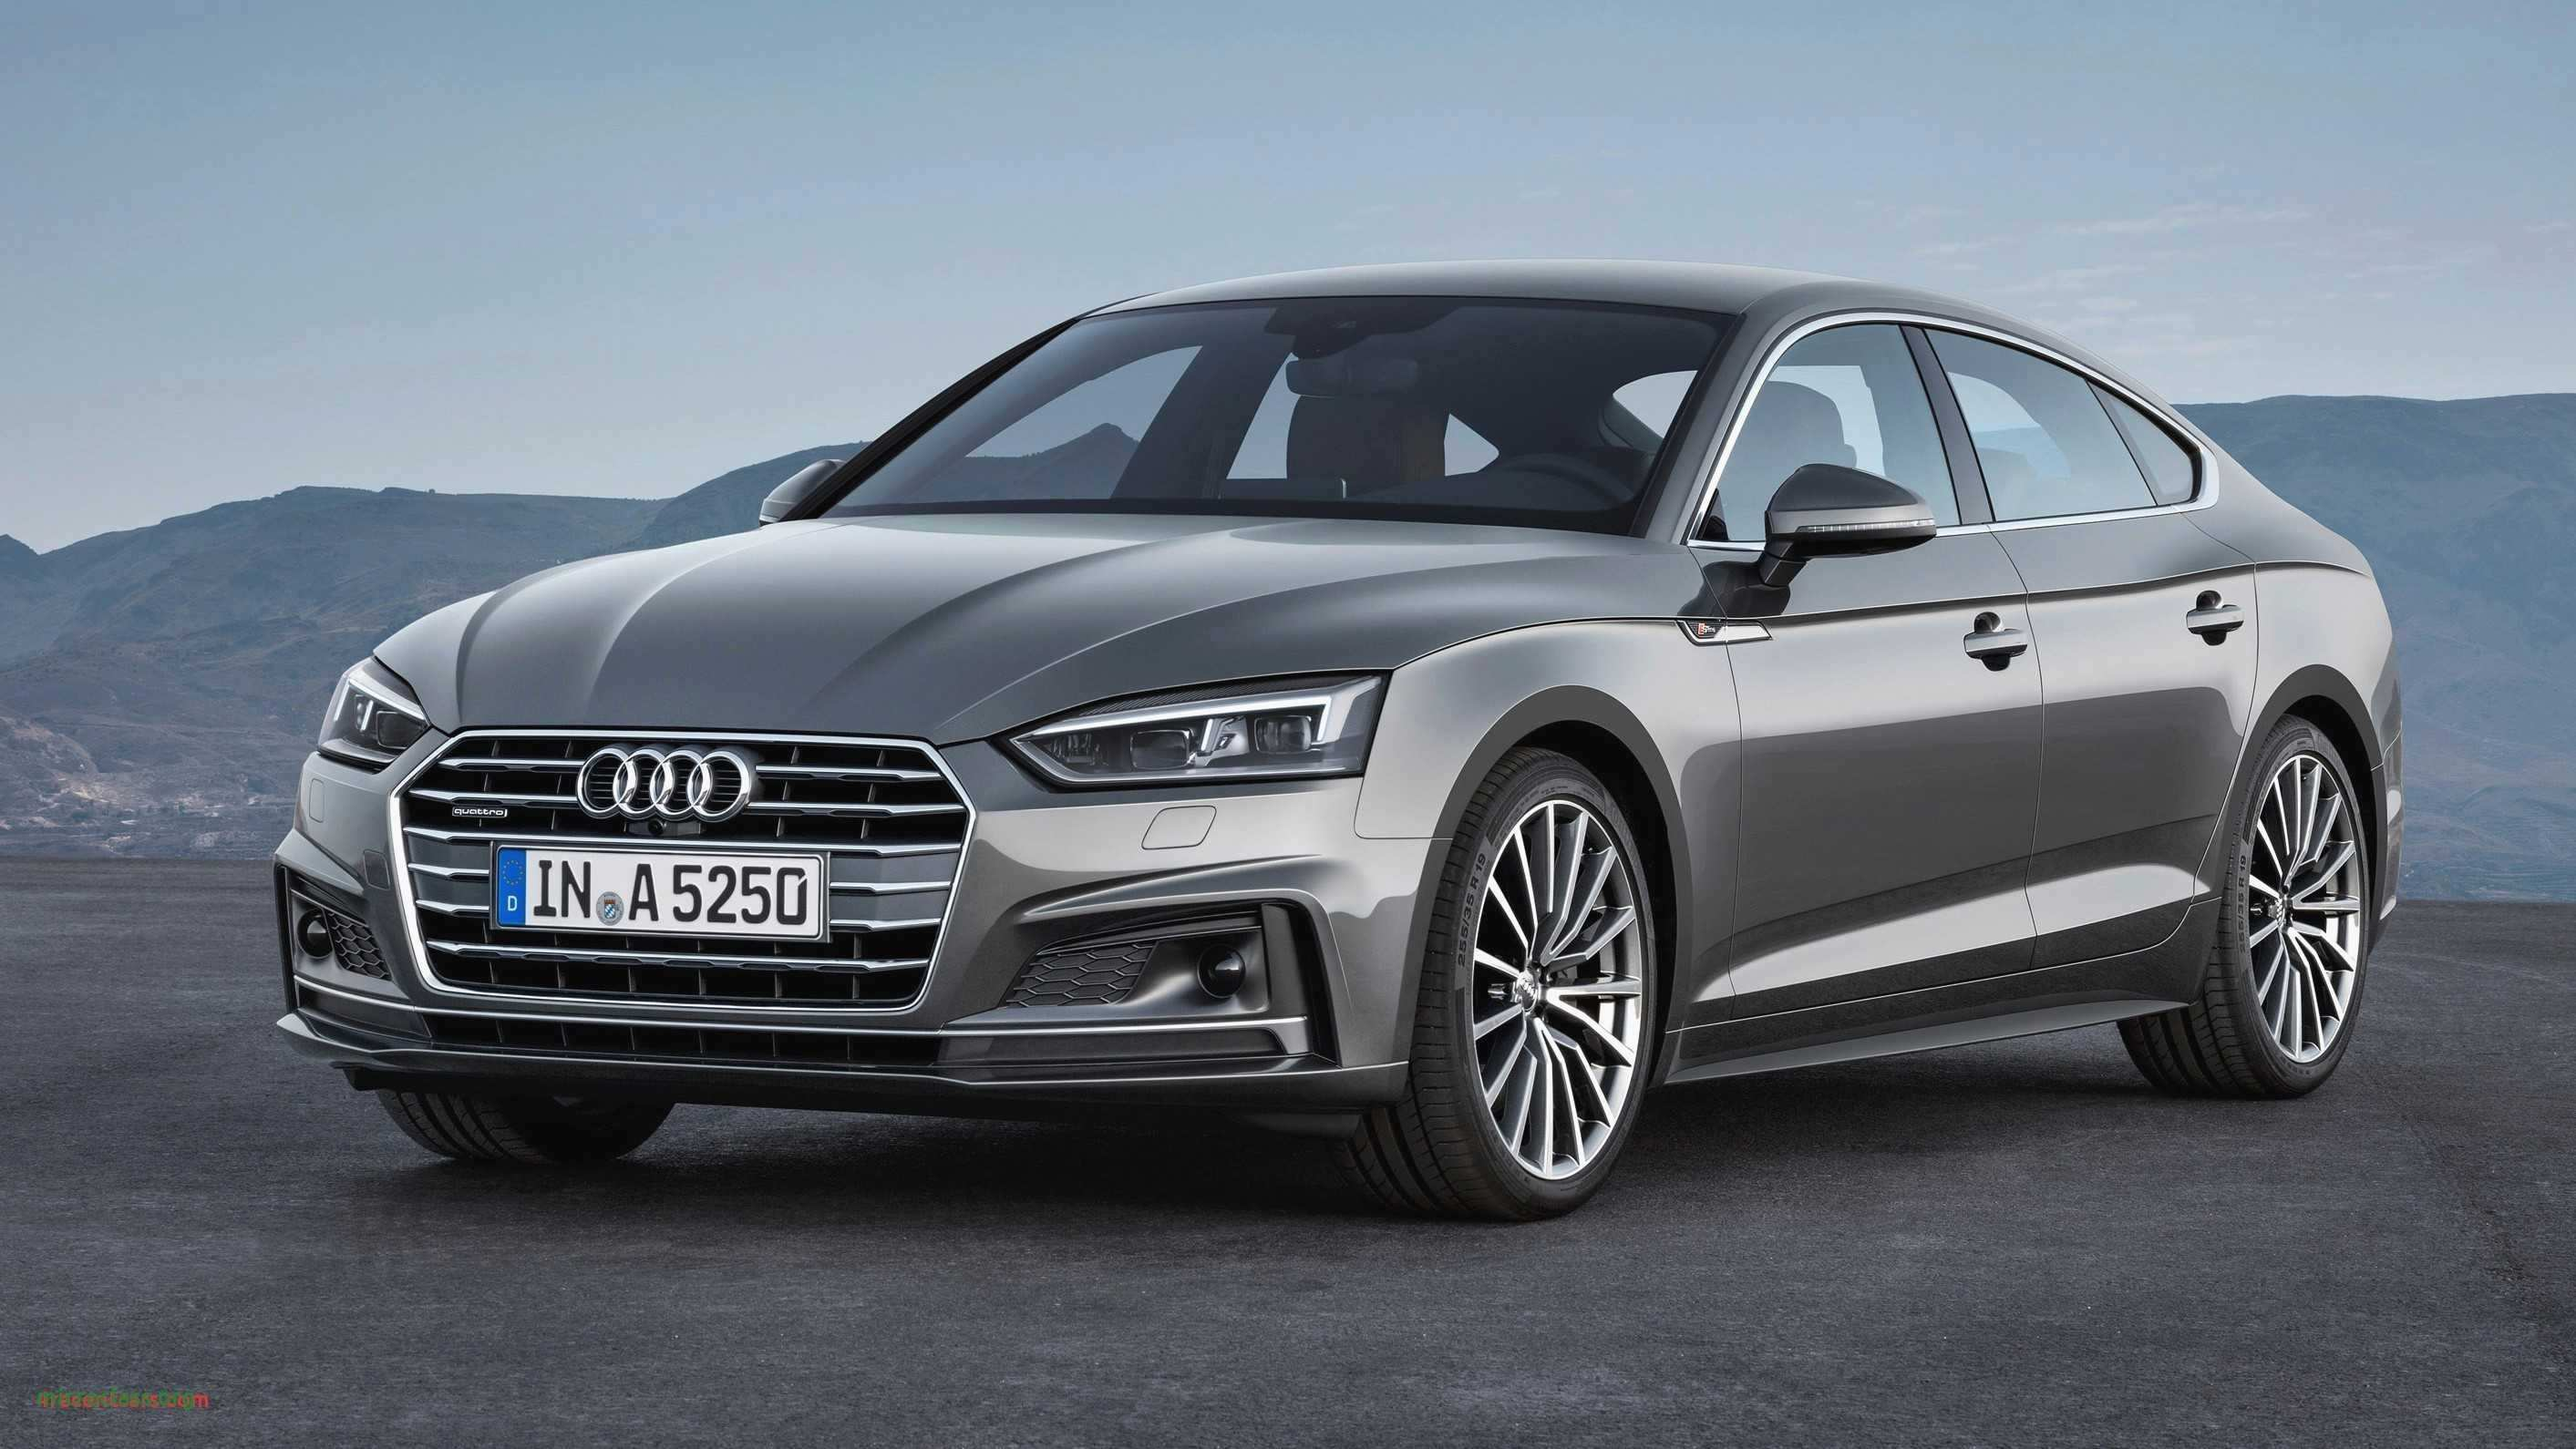 59 New New 2019 Audi Vehicles Redesign And Price Ratings with New 2019 Audi Vehicles Redesign And Price